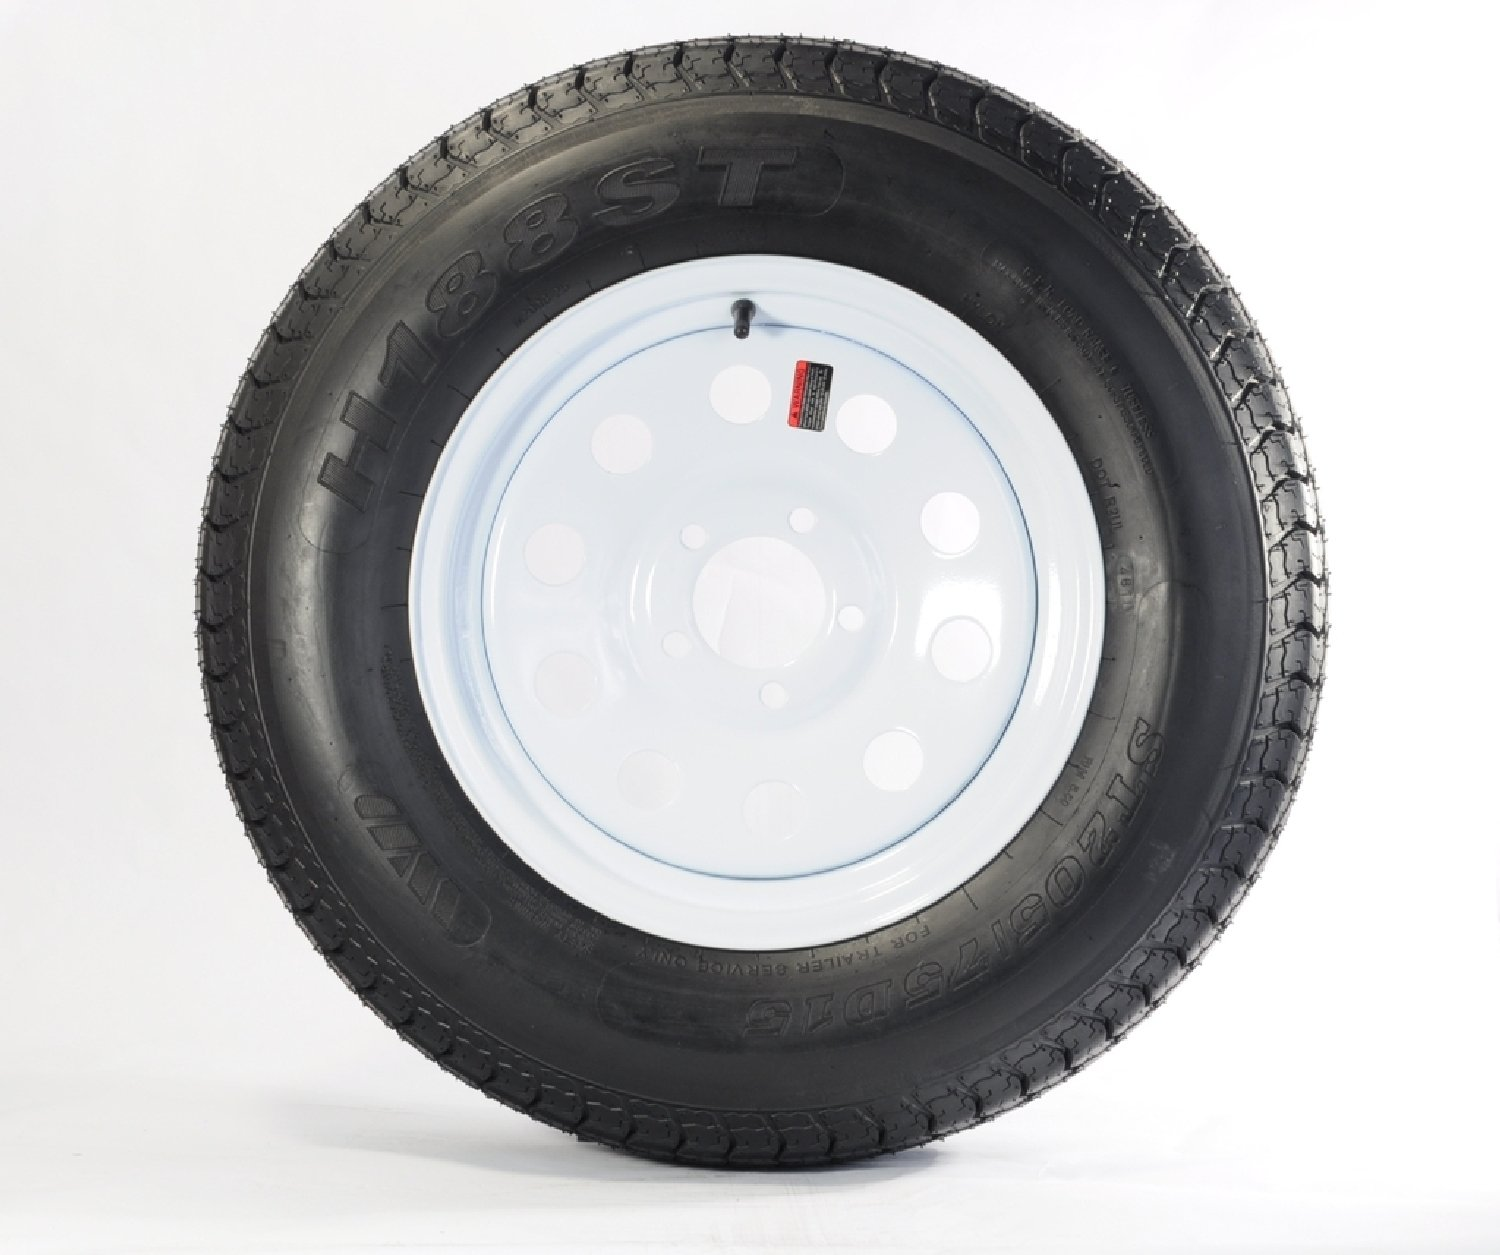 205/75D15 Trailer Tire with Rim (White Mod Rim)